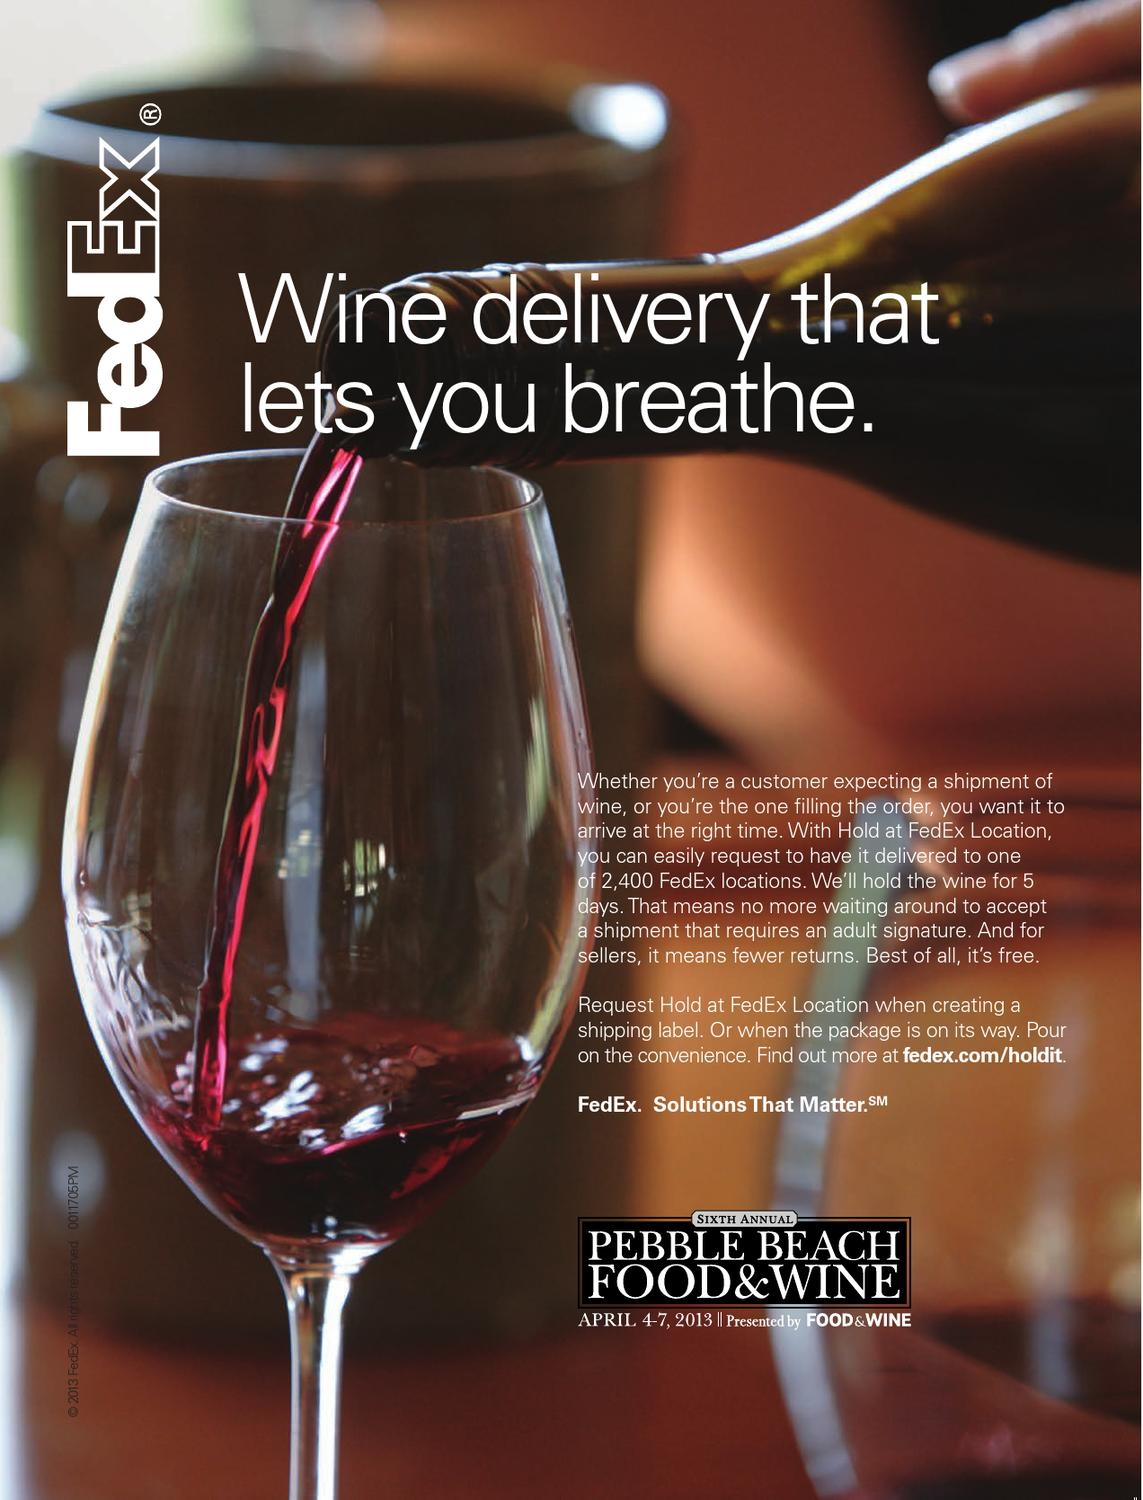 Pebble Beach Food & Wine - 2013 Epicure by CLM_MRY - issuu